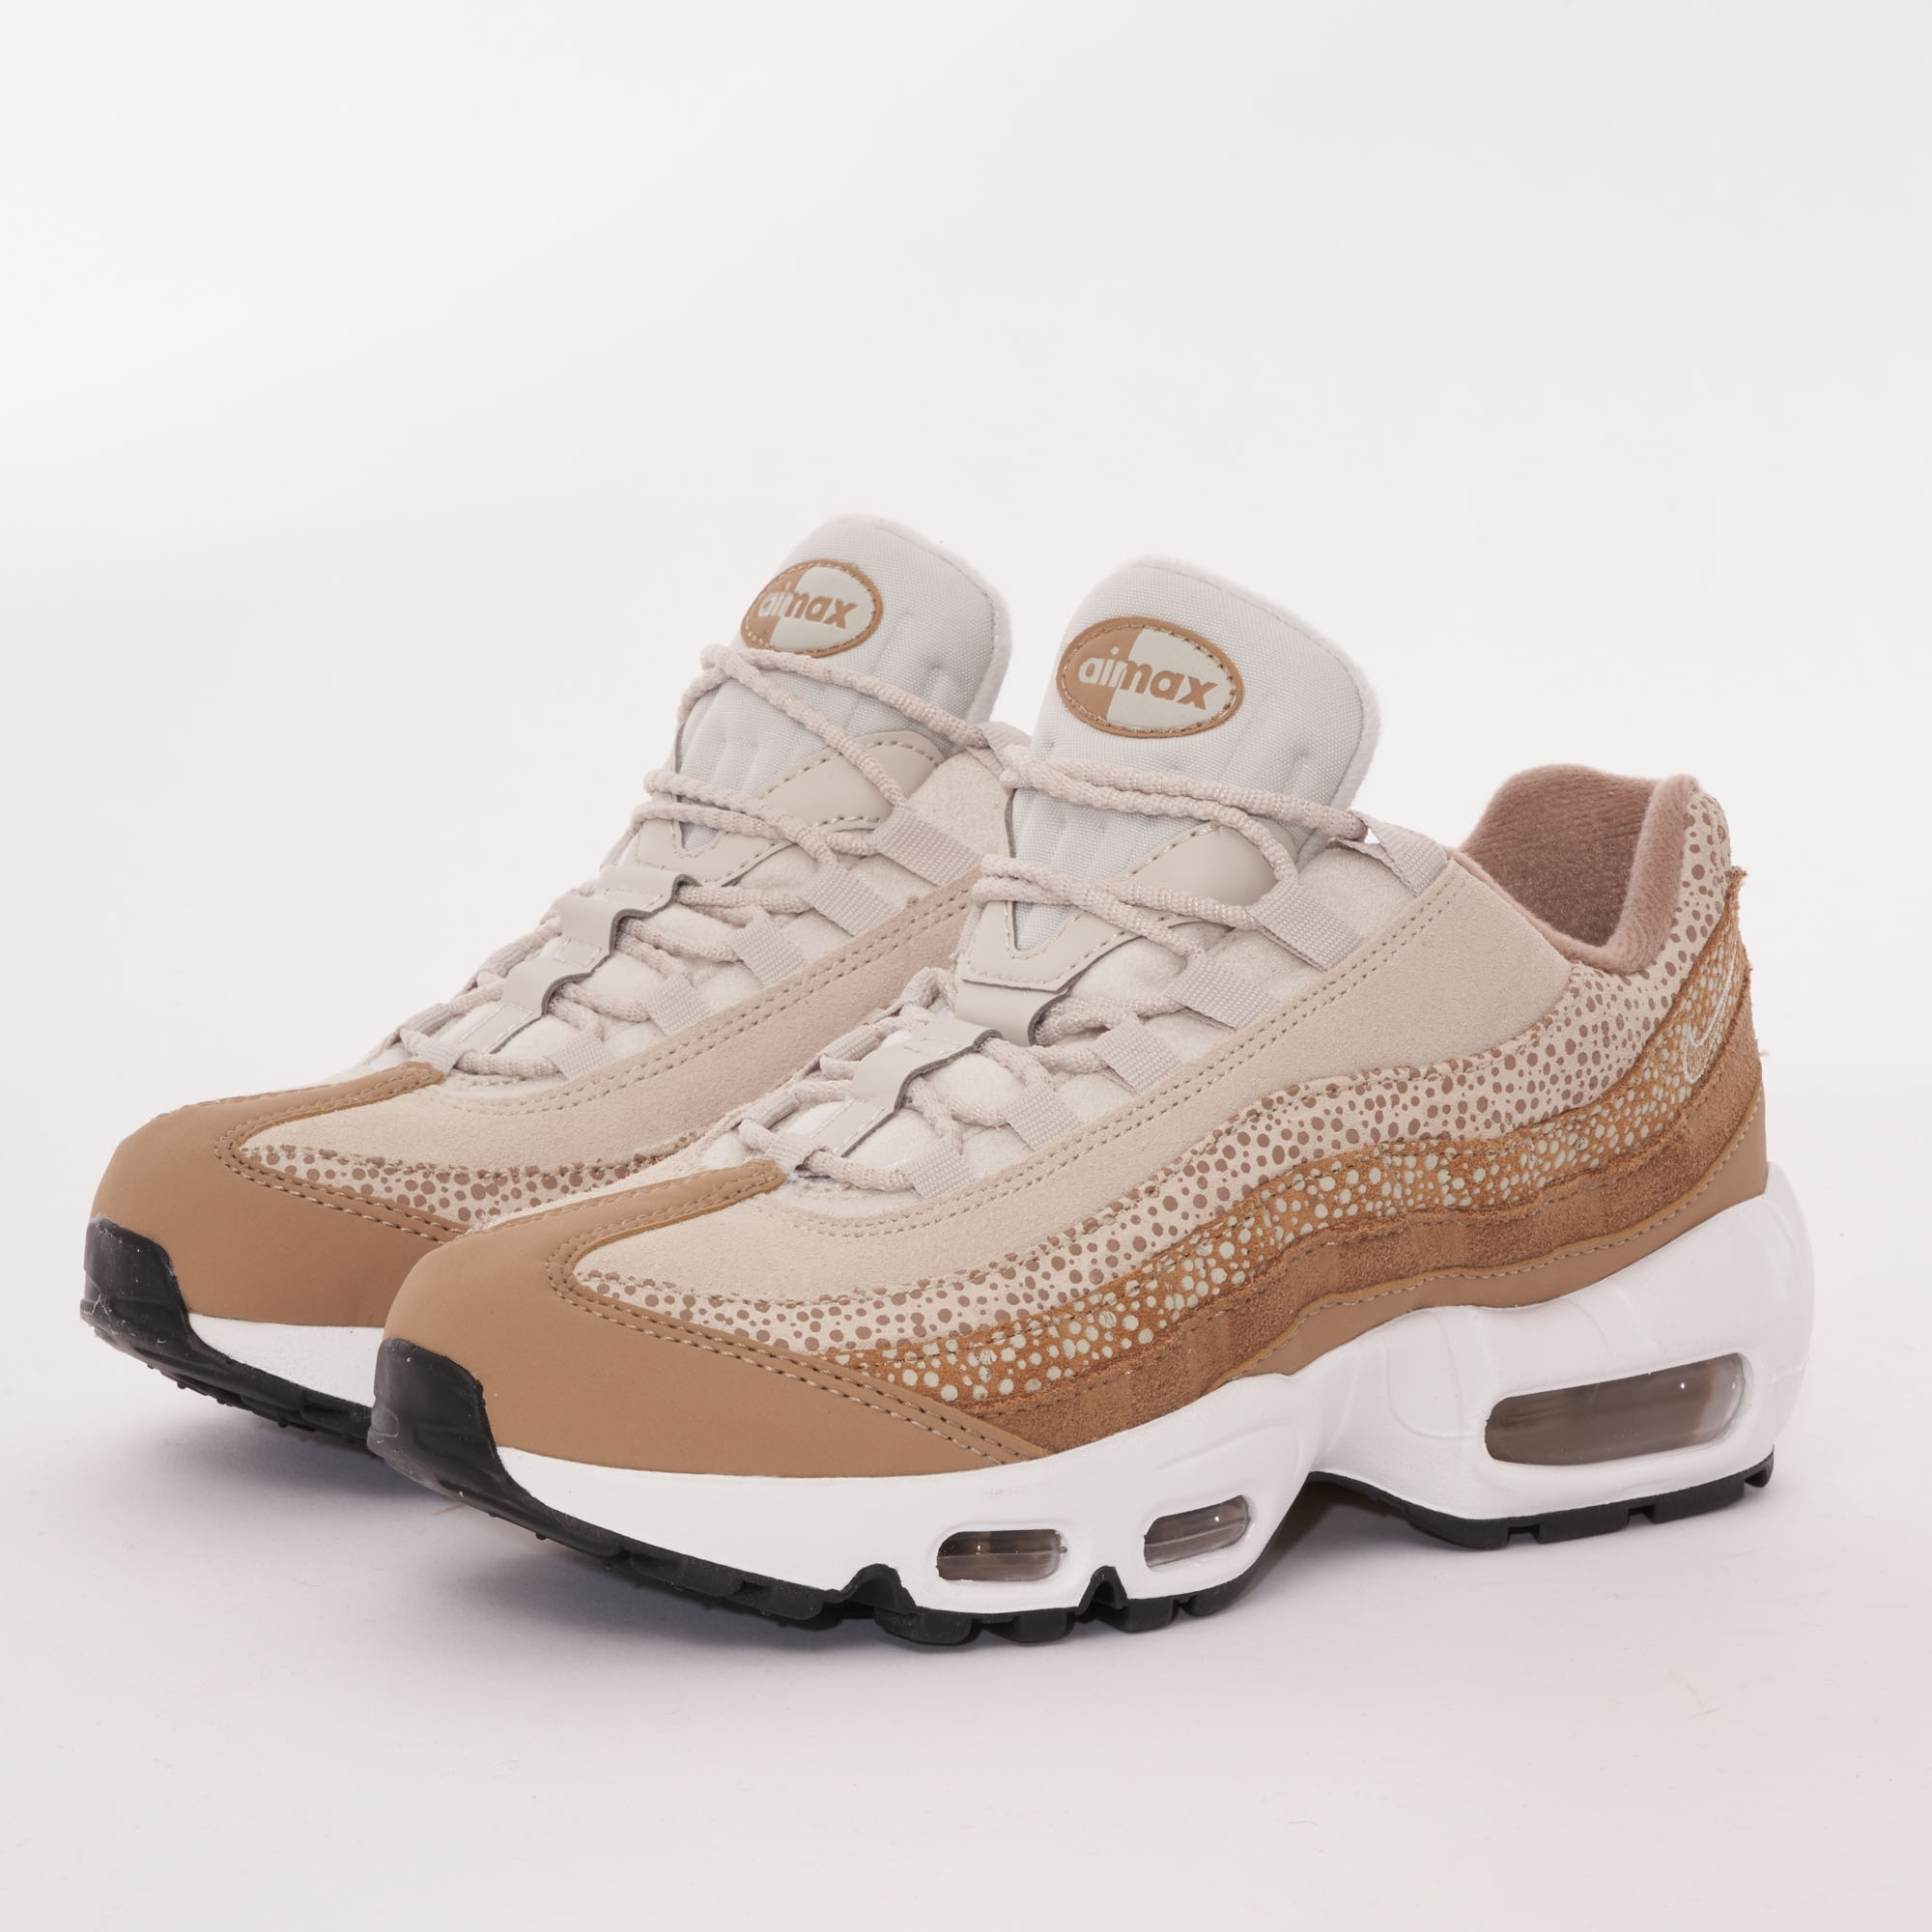 f303a4cd0b24 Nike Womens Air Max 95 Premium